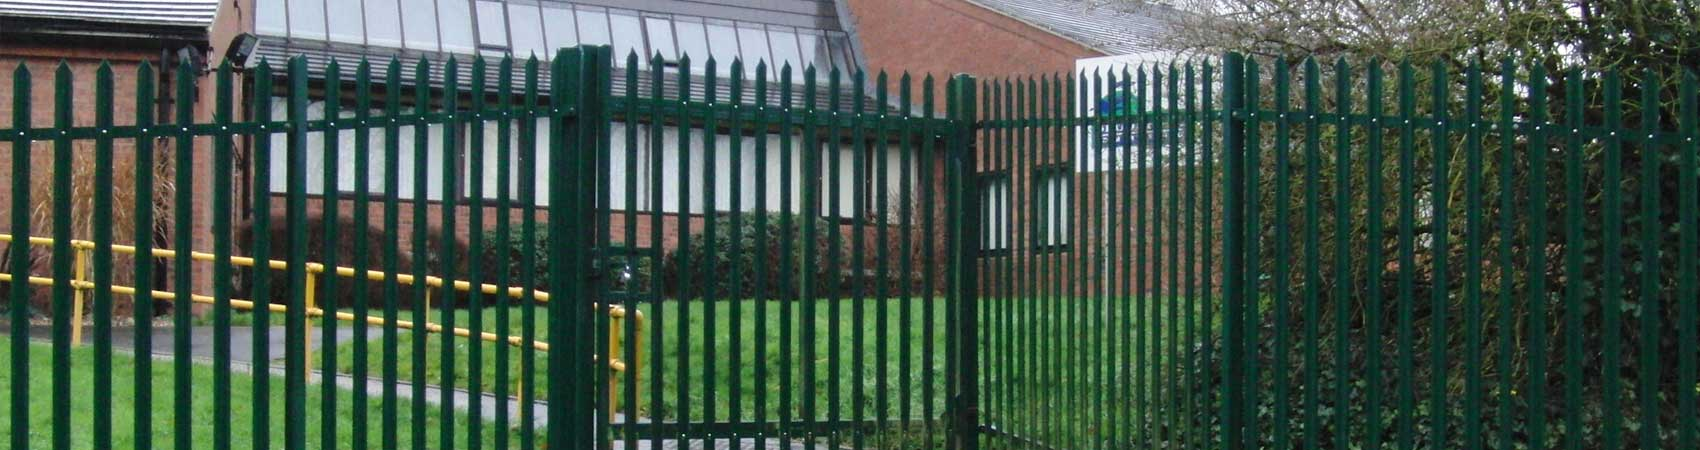 Steel Fencing Amp Gate Supplier Fengate Manufacturing Limited